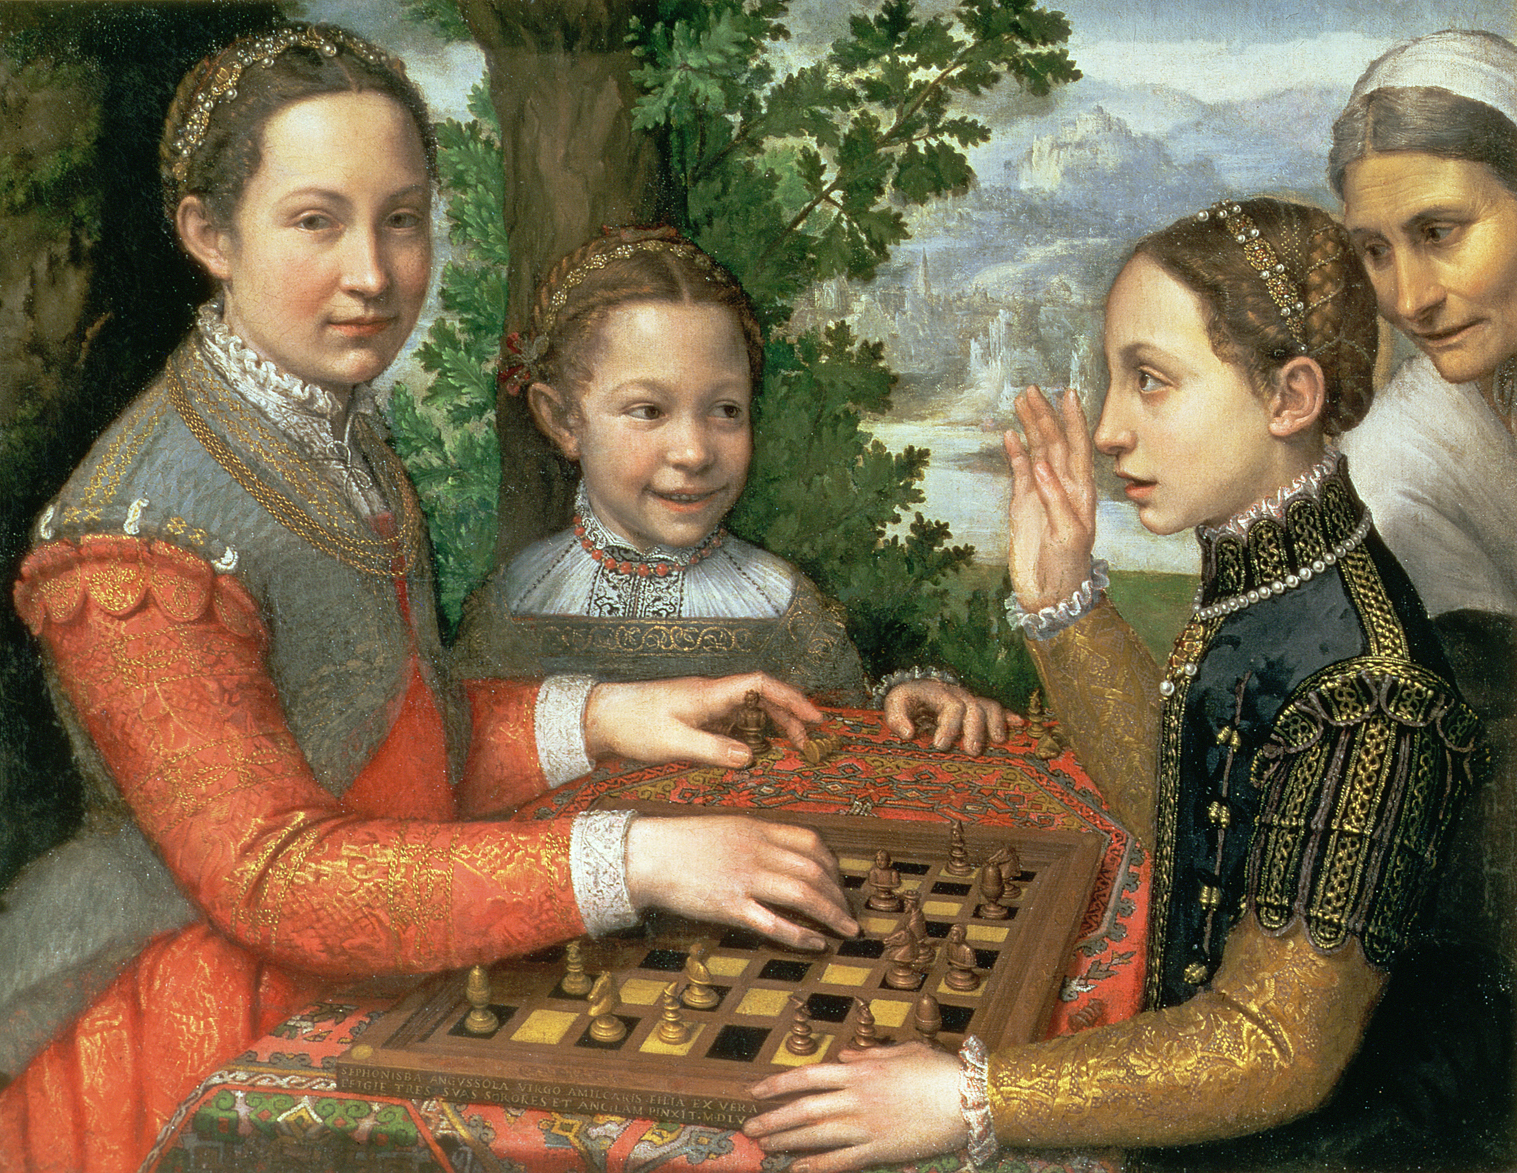 Renaissance painting of three sisters playing chess.